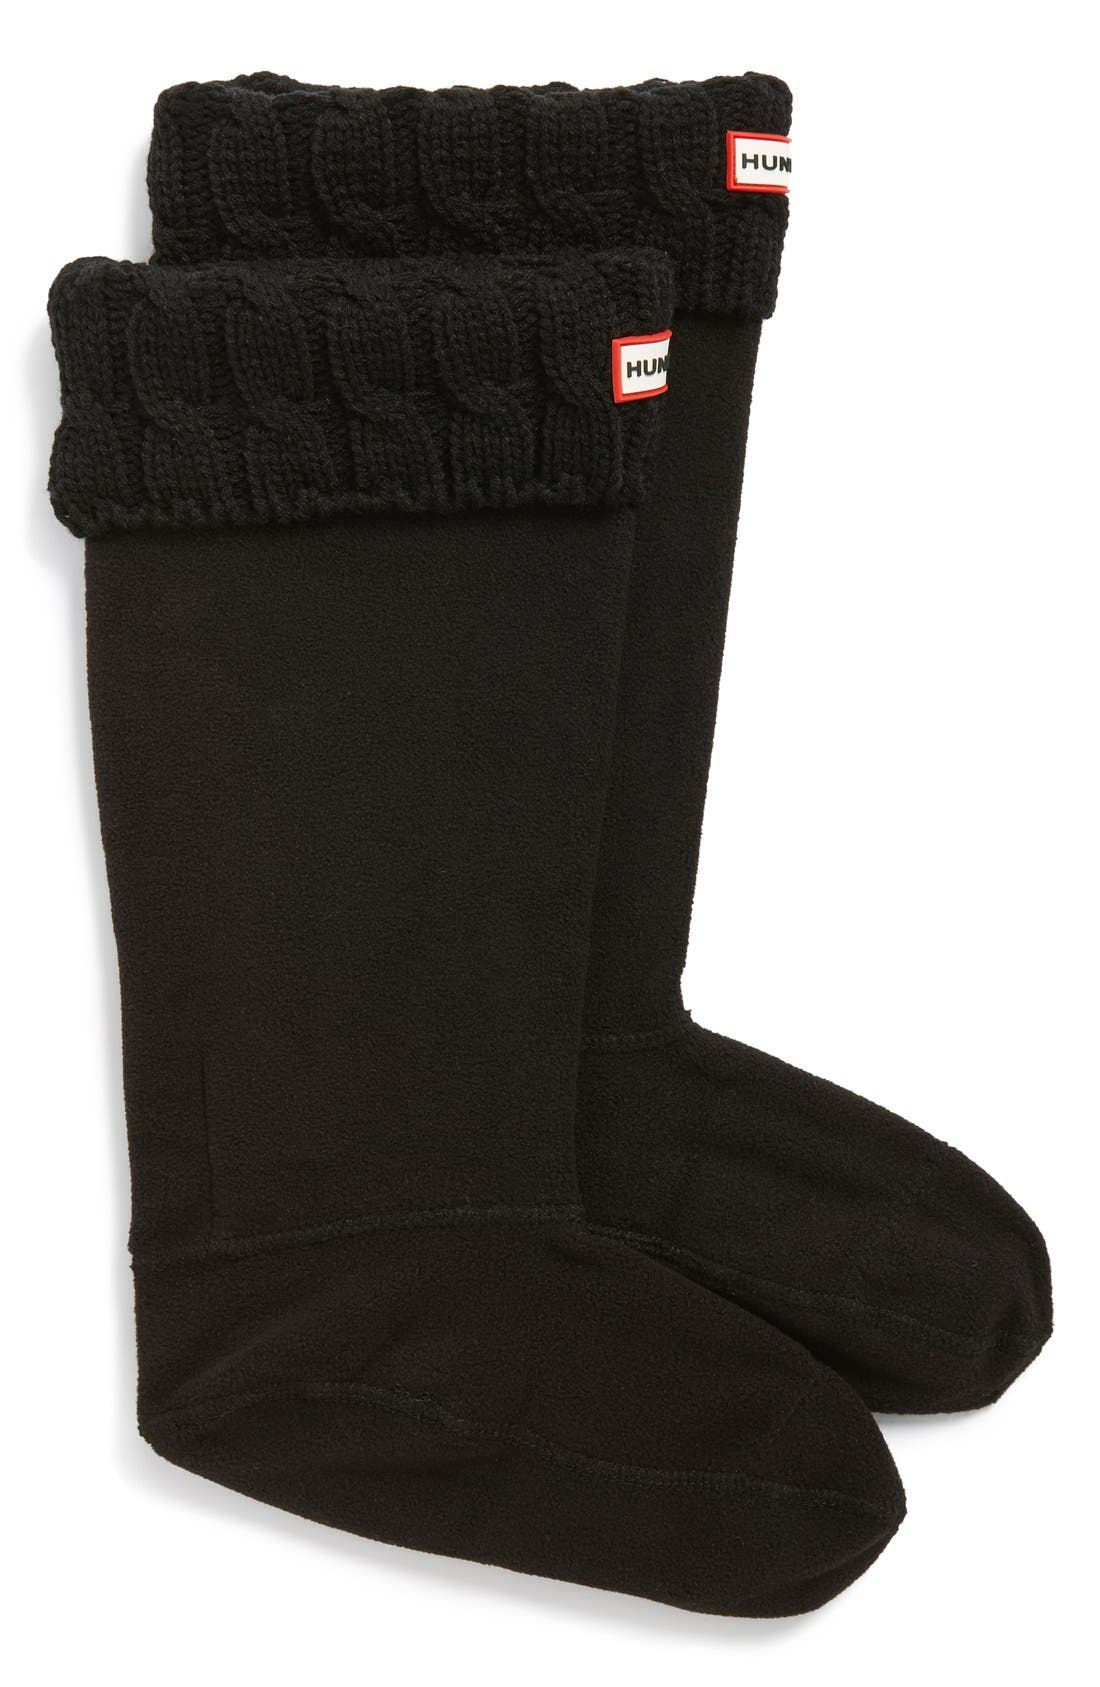 Hunter Women's Socks | Nordstrom